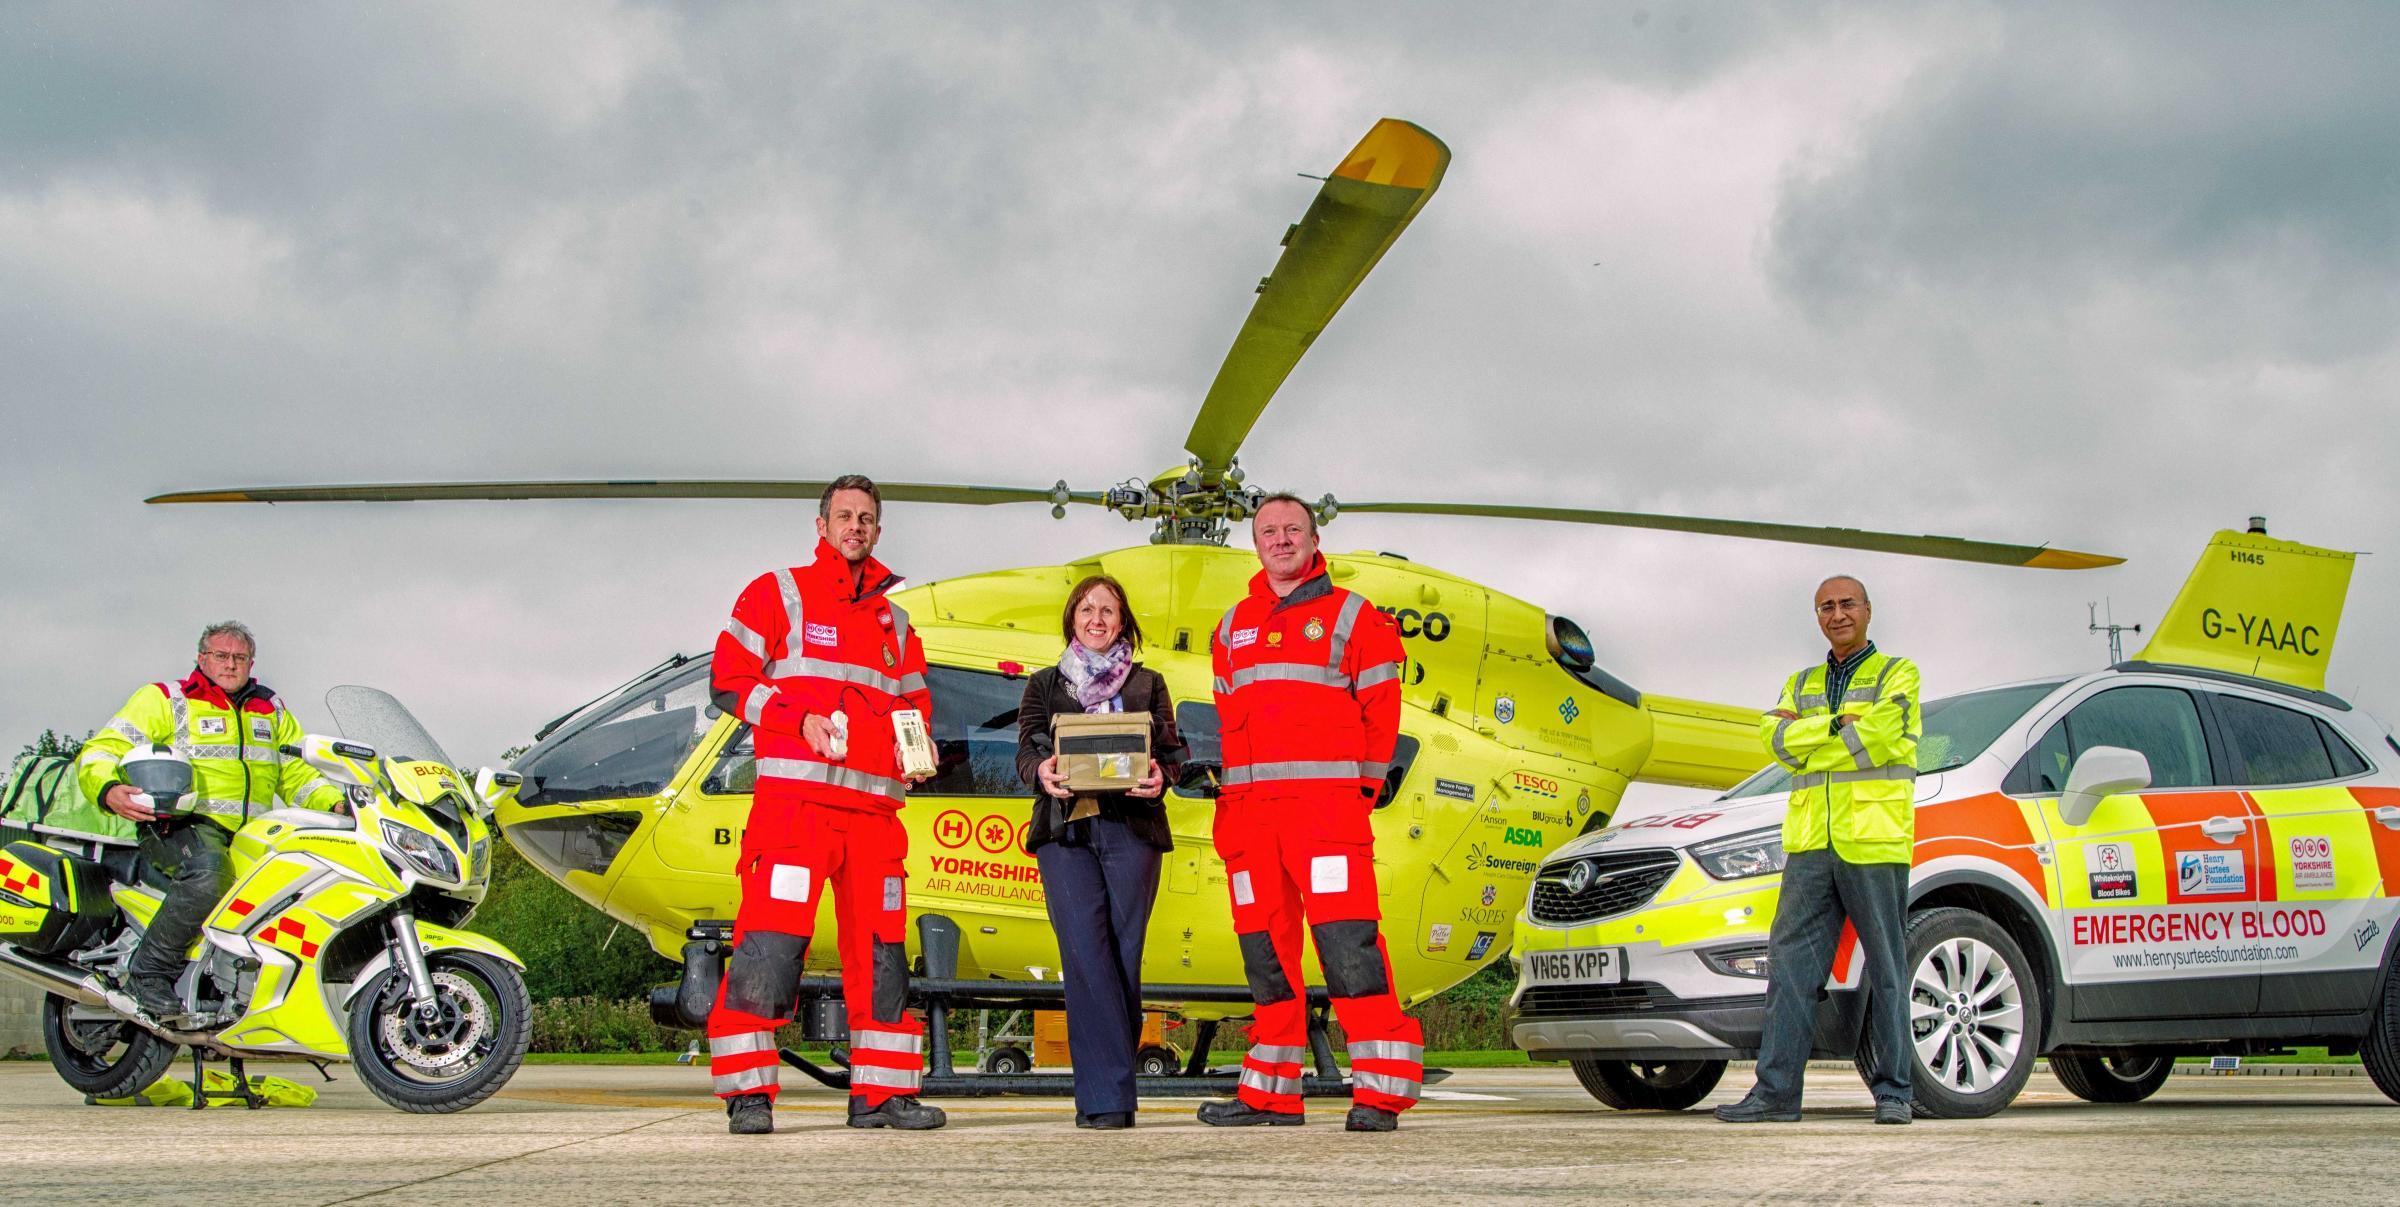 Blood is now being carried on board a Yorkshire Air Ambulance